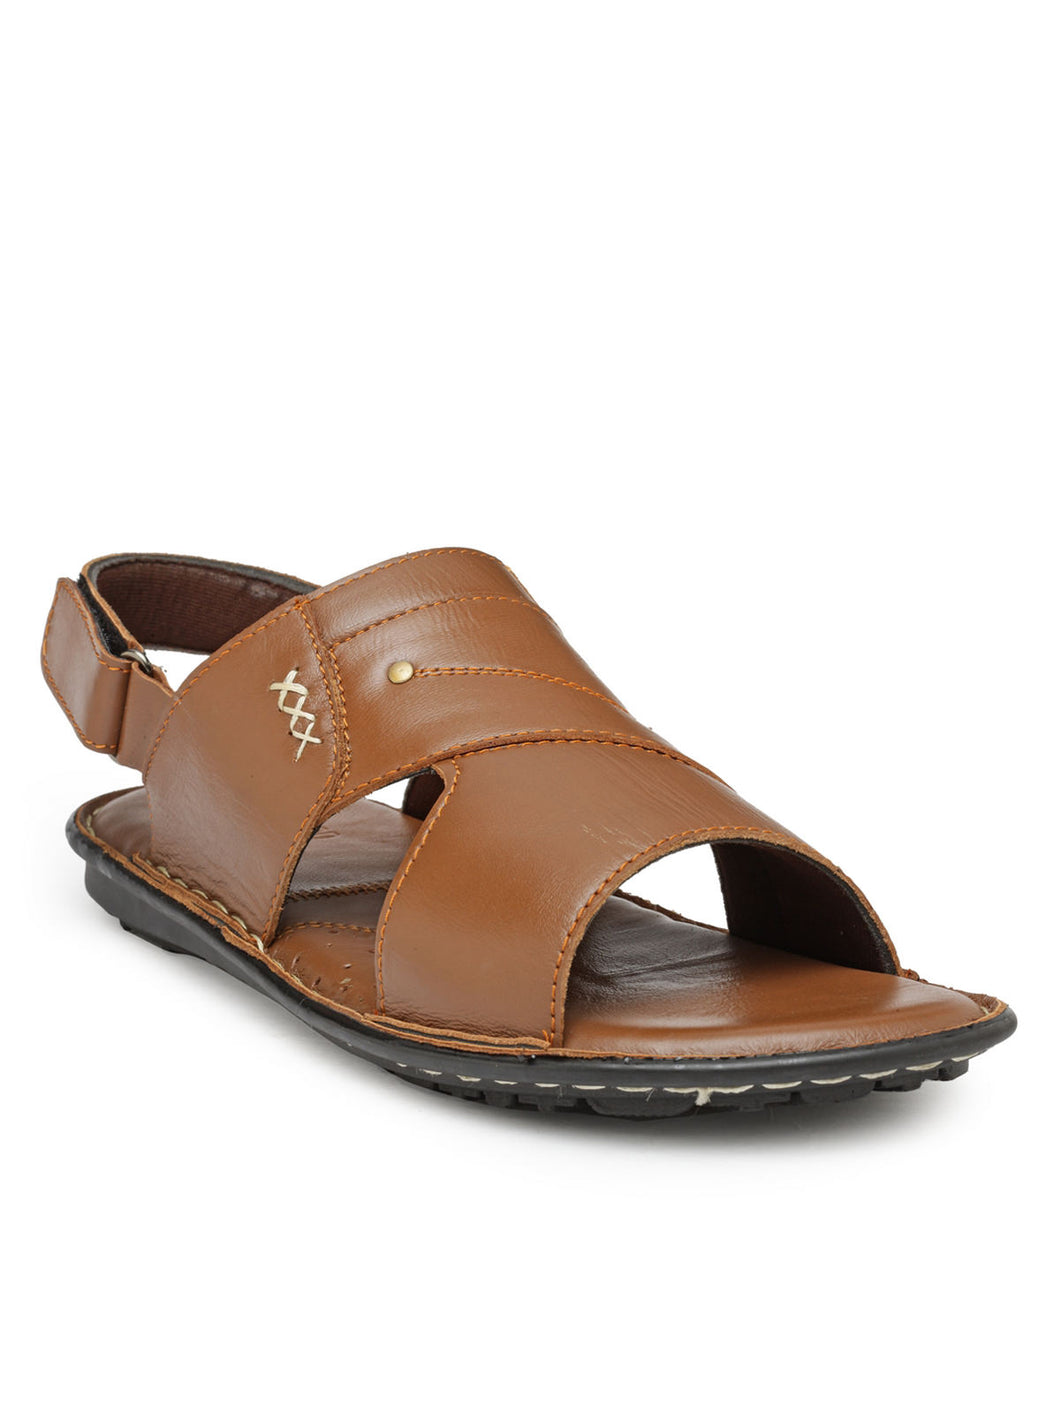 Teakwood Tan Daily Wear Sandals